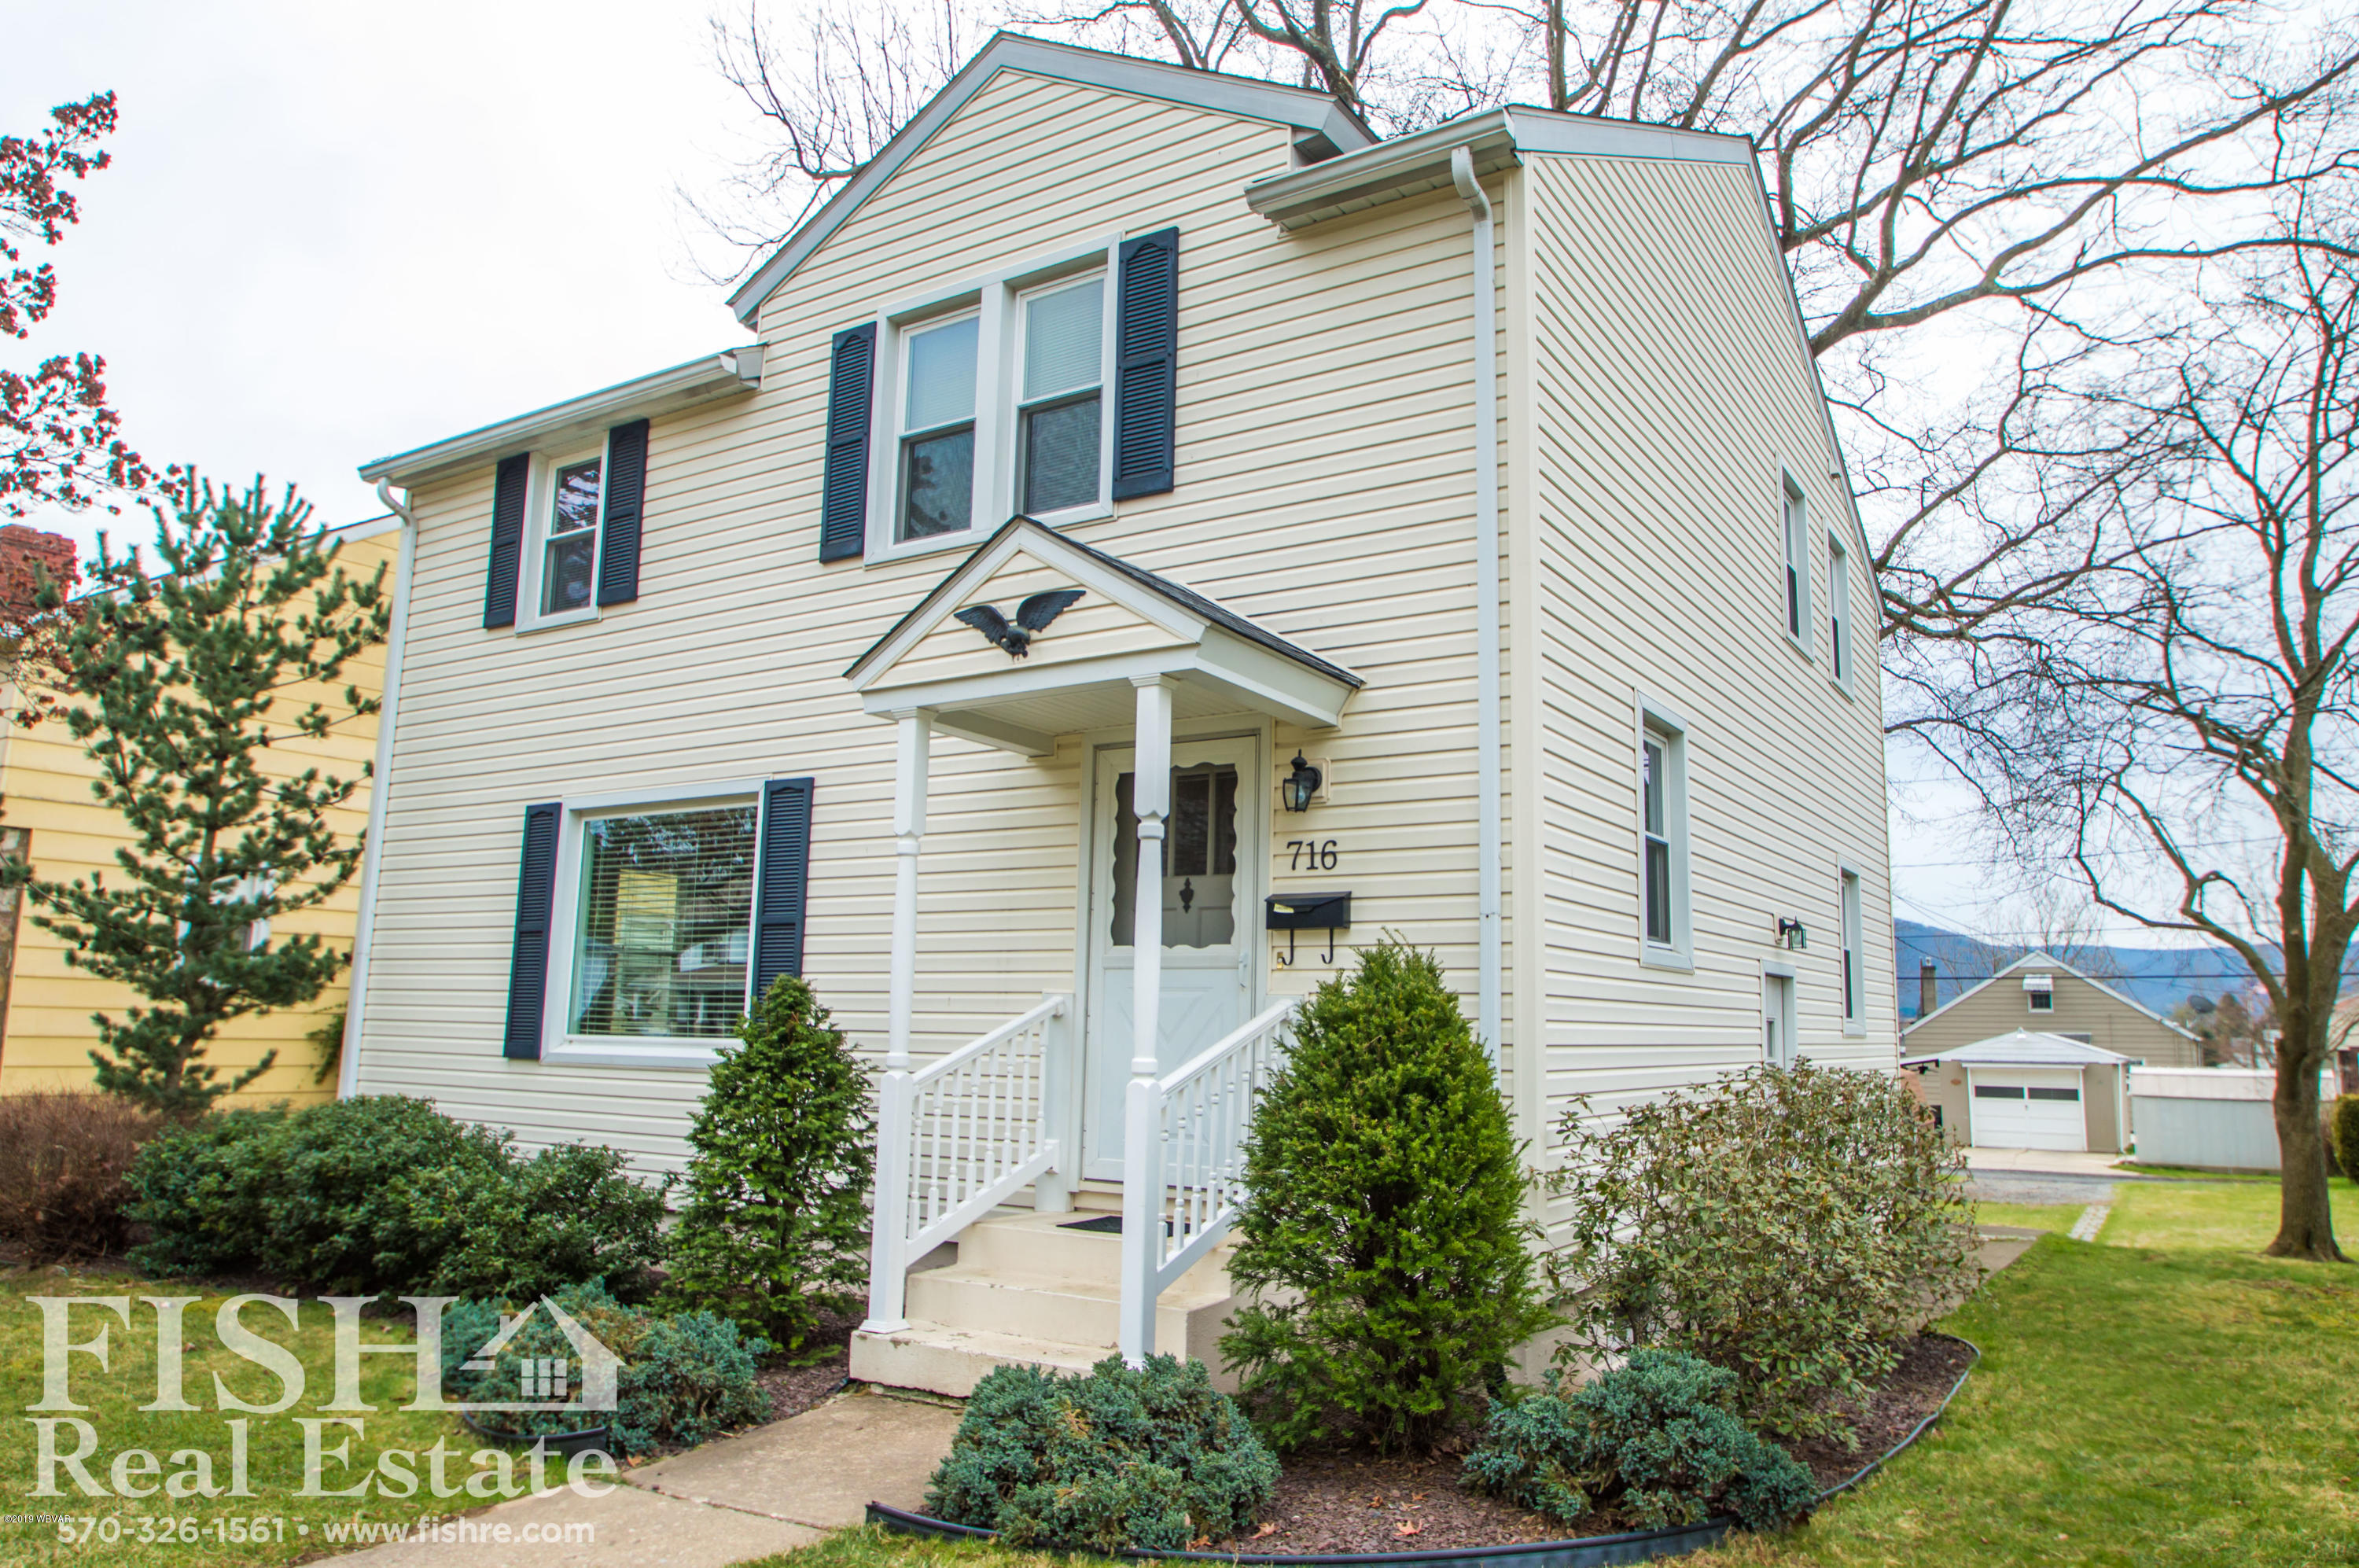 716 LINCOLN AVENUE,Williamsport,PA 17701,3 Bedrooms Bedrooms,2 BathroomsBathrooms,Residential,LINCOLN,WB-87568